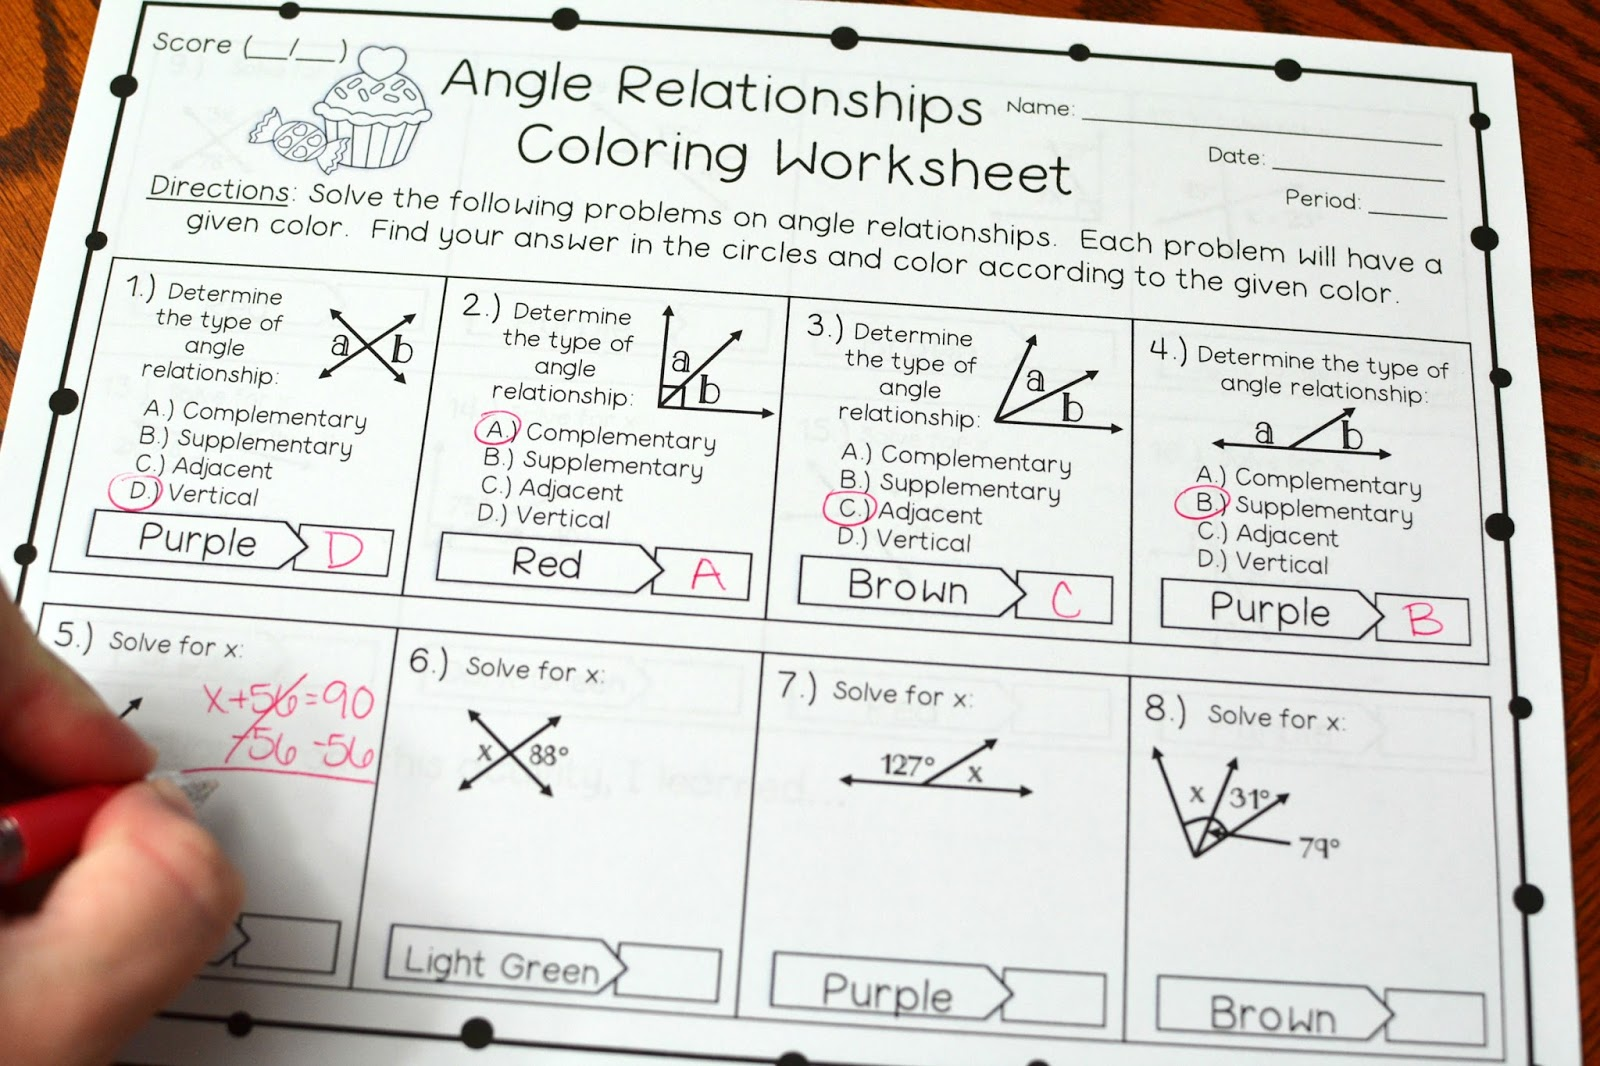 medium resolution of Angle Relationships Coloring Worksheet